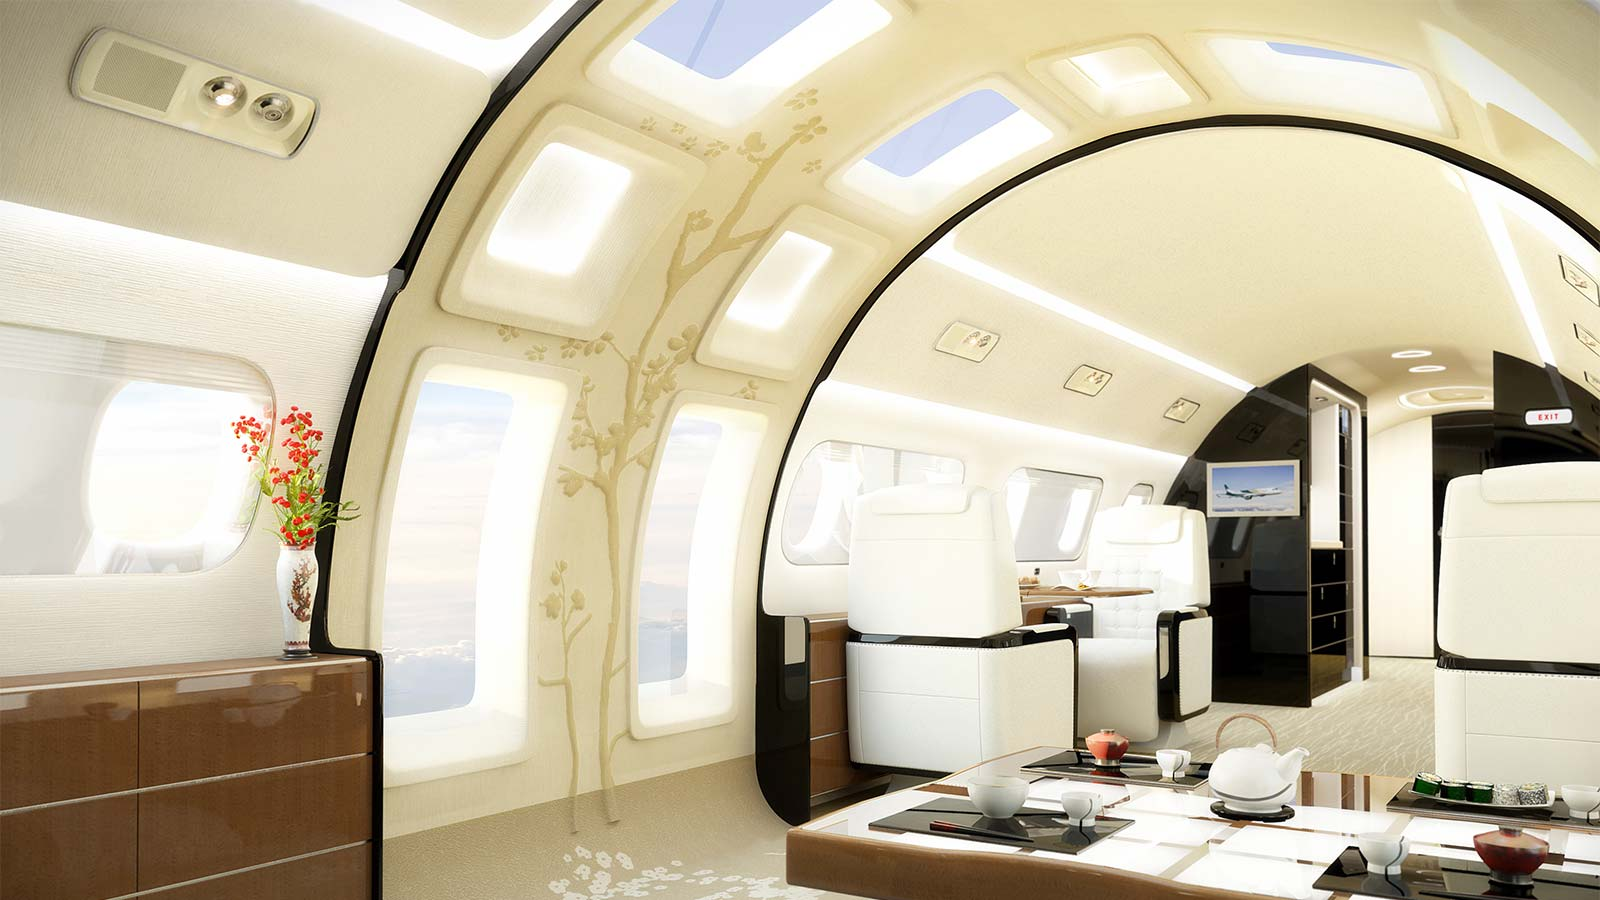 Future Passenger Planes What Will They Look Like In 2068